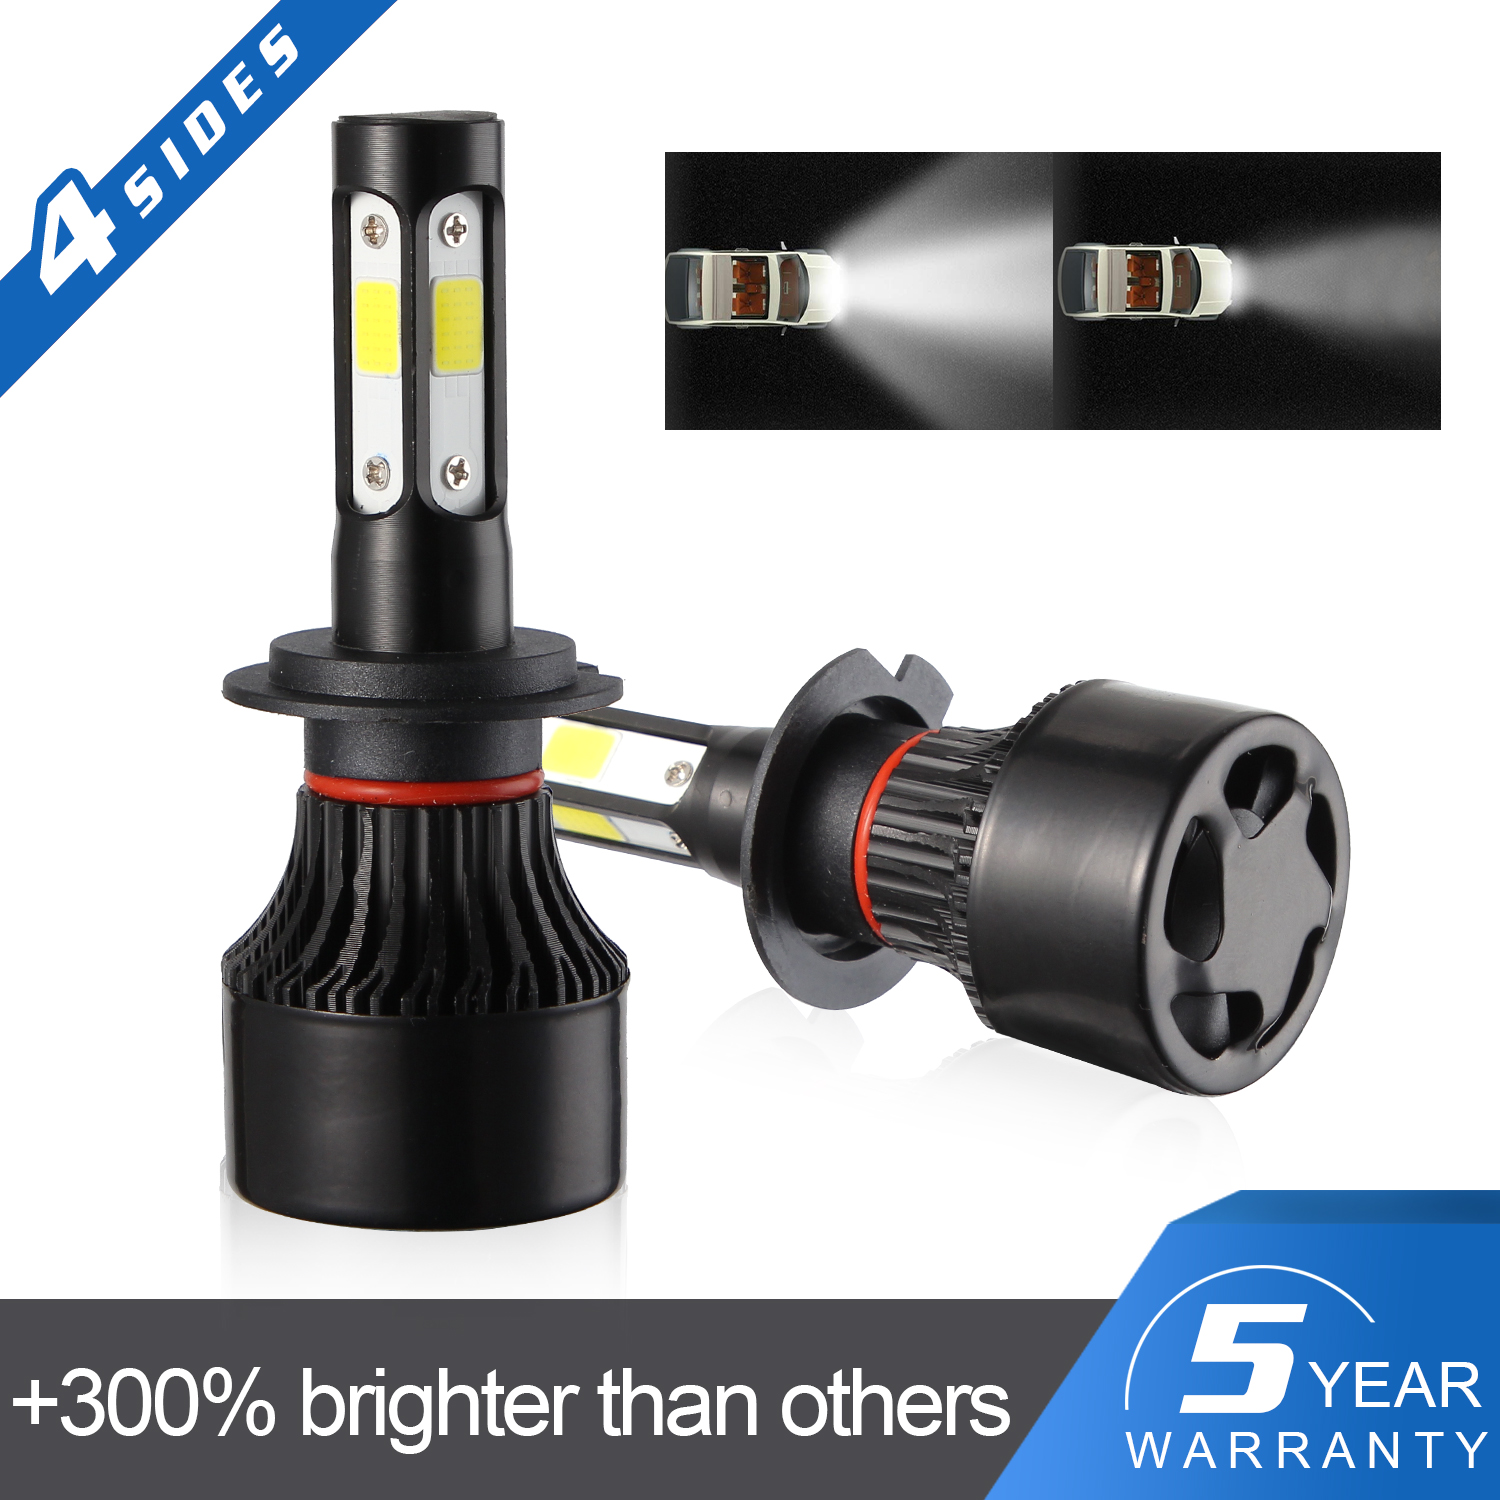 2x 4-Side <font><b>H7</b></font> LED Headlight Kits Hi/Lo Beam Bulbs 2400W 360000LM 6500K White LED Headlight Fog Light Bulbs COB Light image